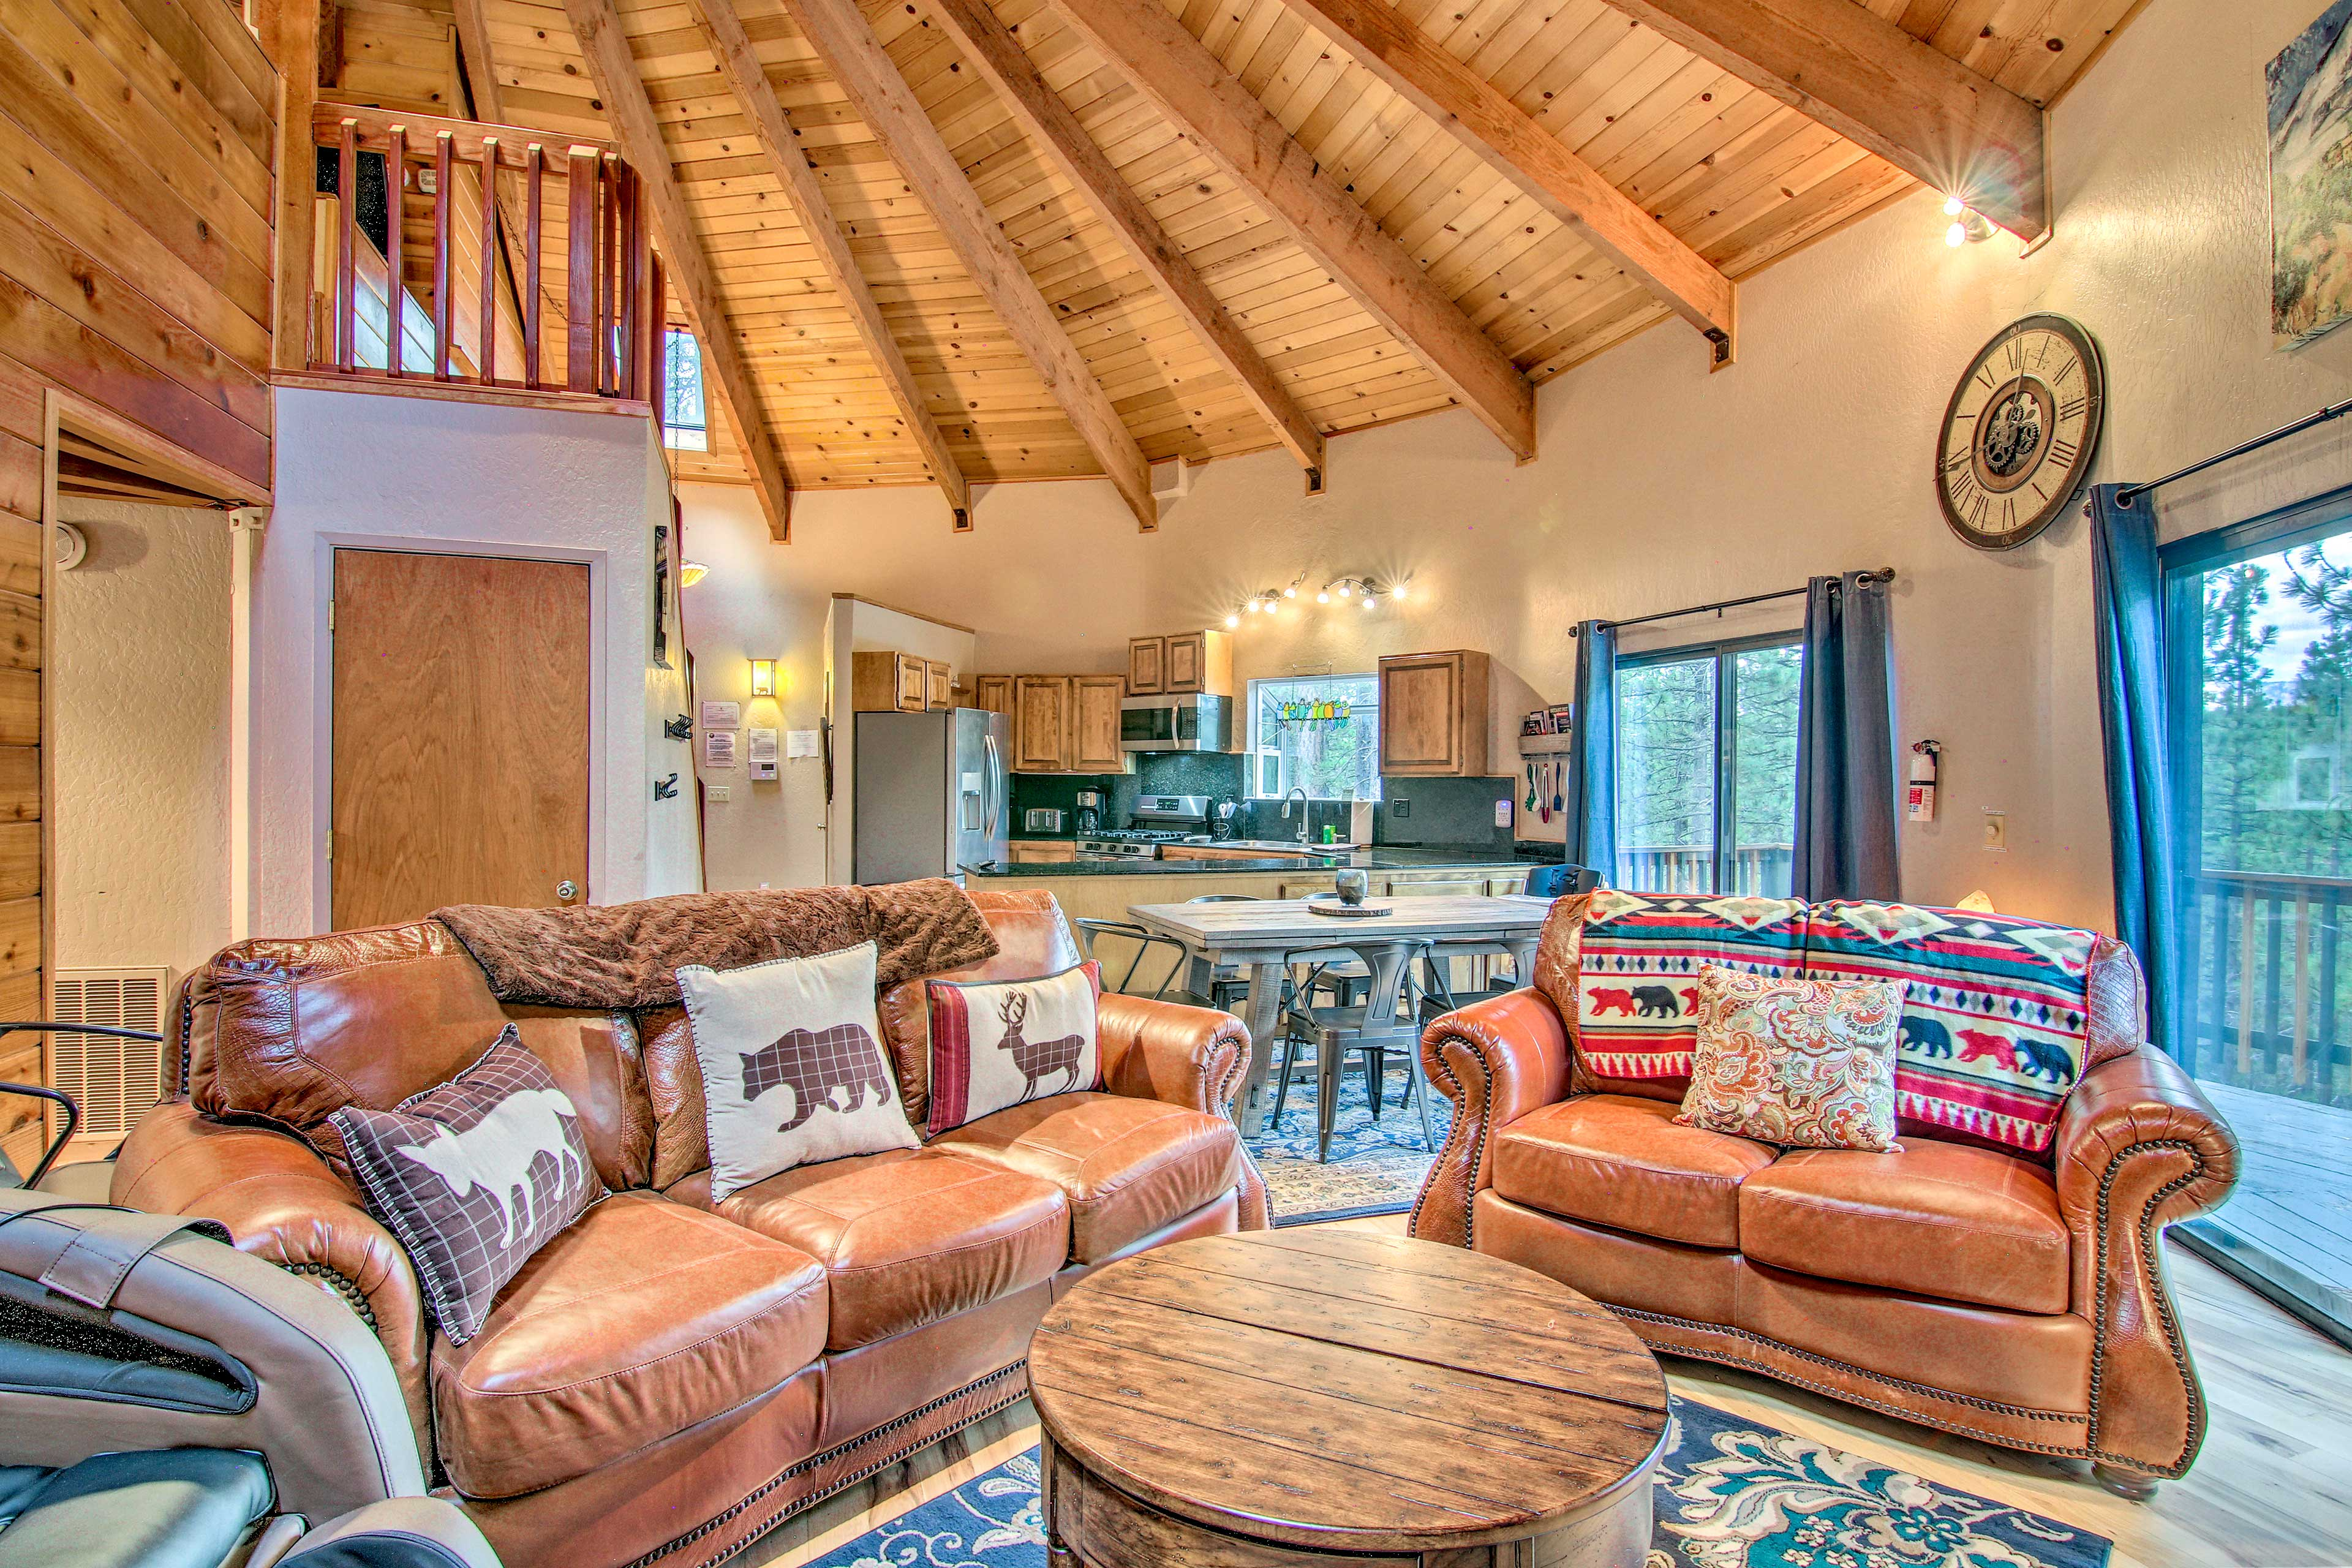 High ceilings and rustic details add to the cozy atmosphere in the living area.